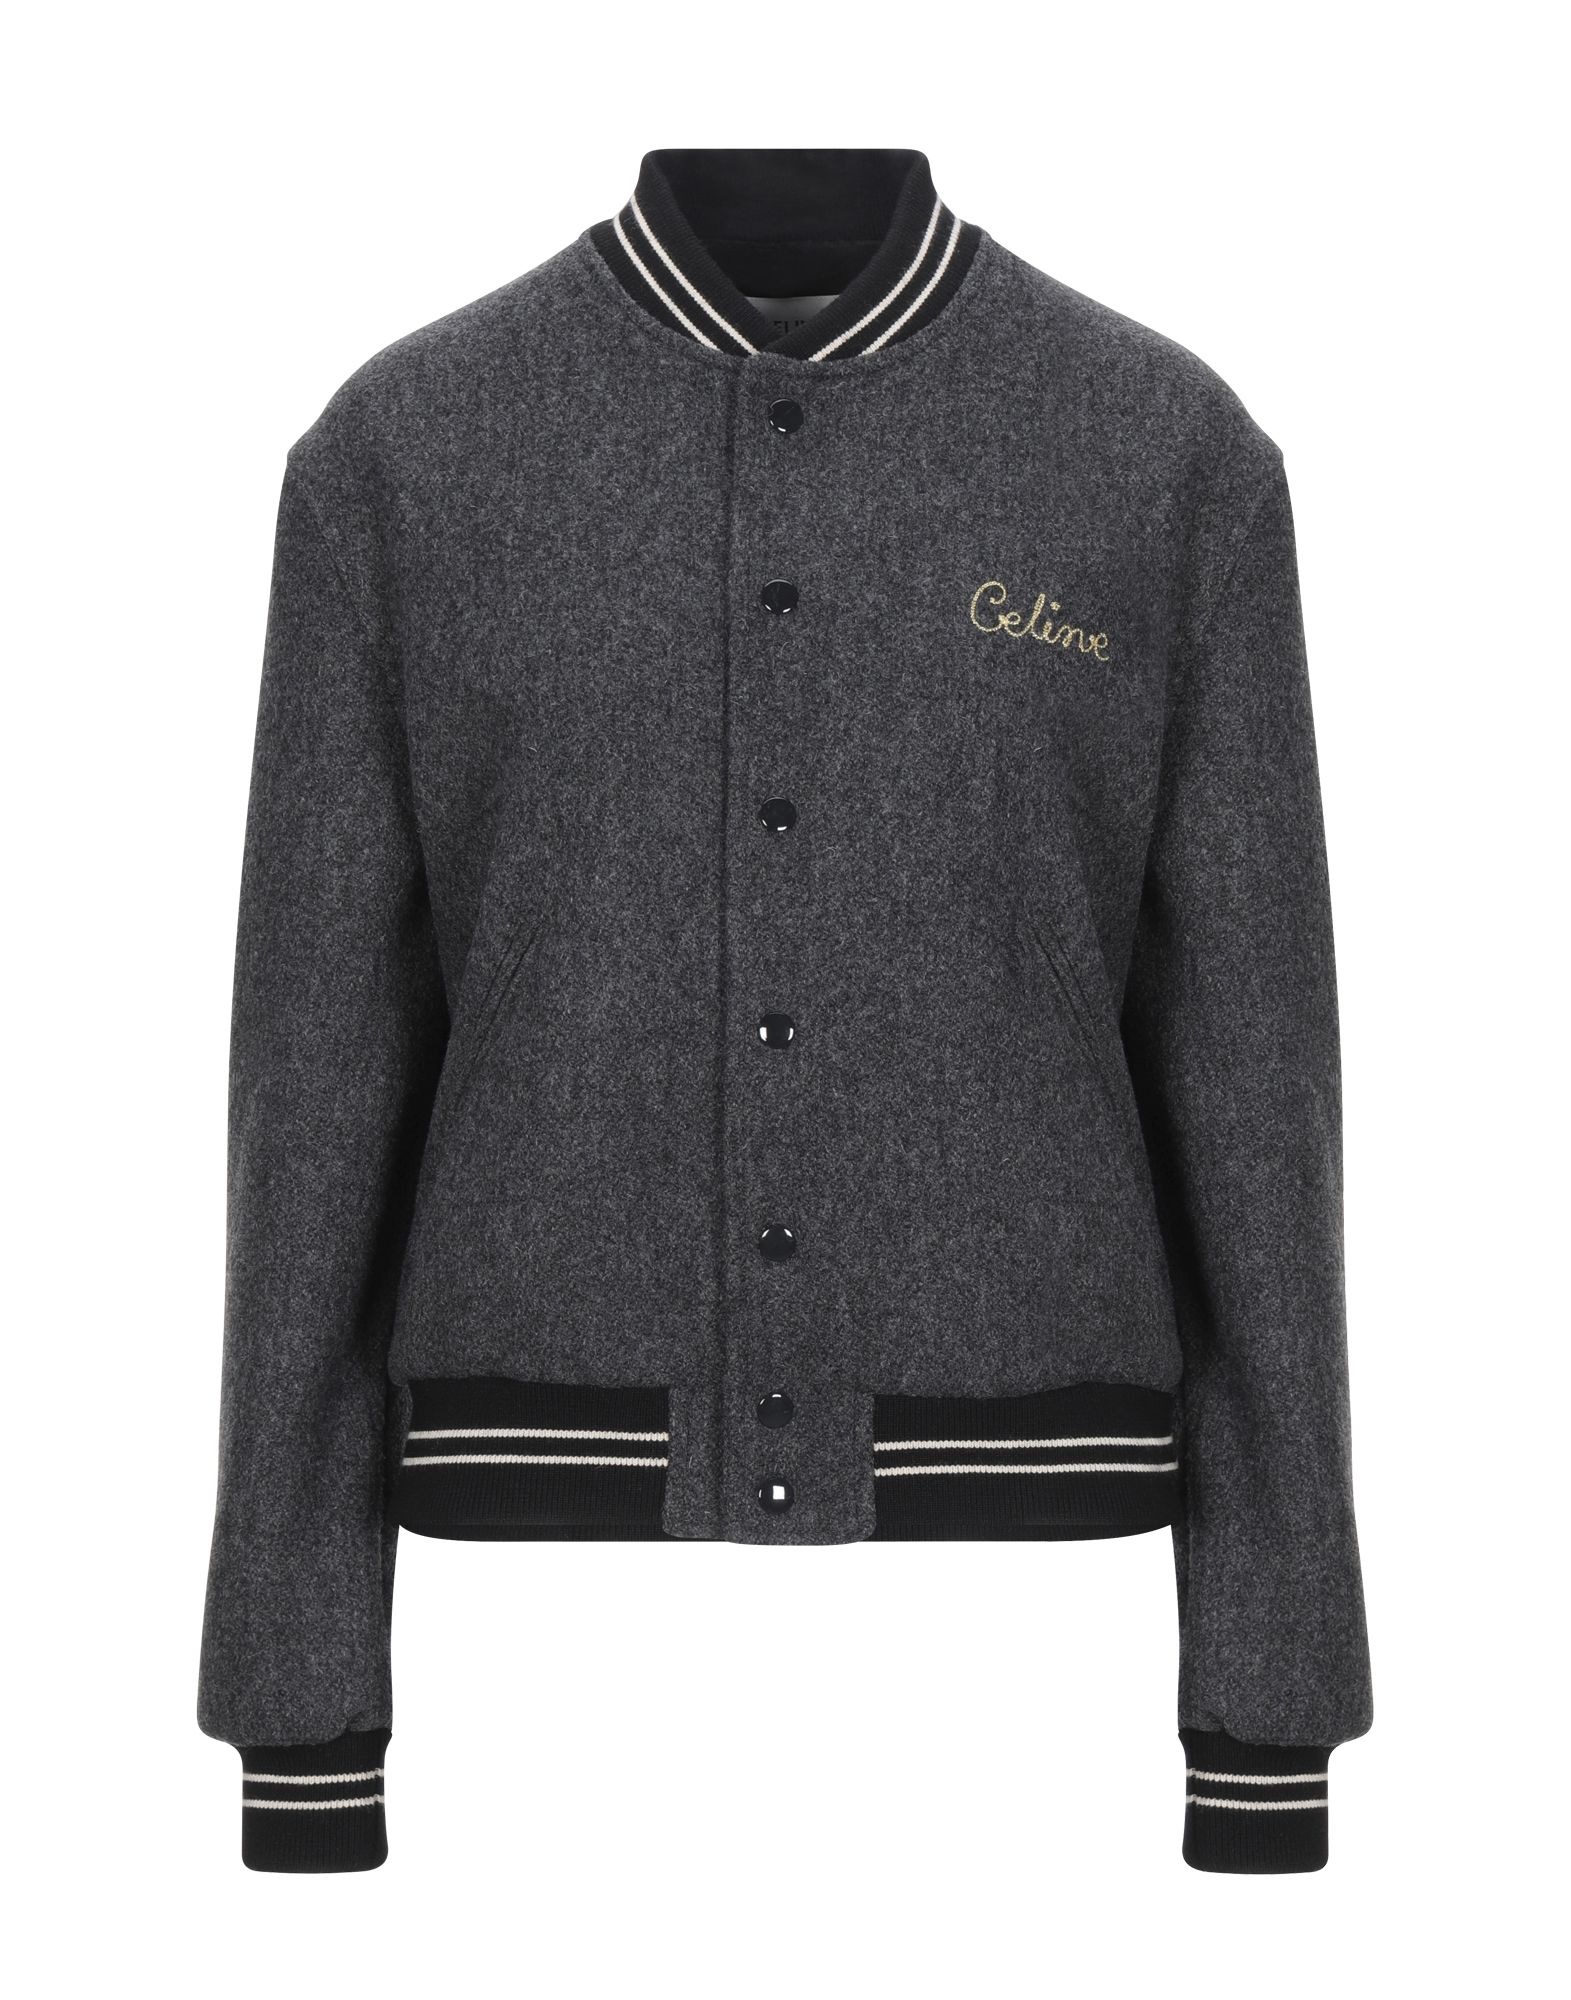 flannel, logo, solid color, single-breasted, snap buttons fastening, round collar, multipockets, lon